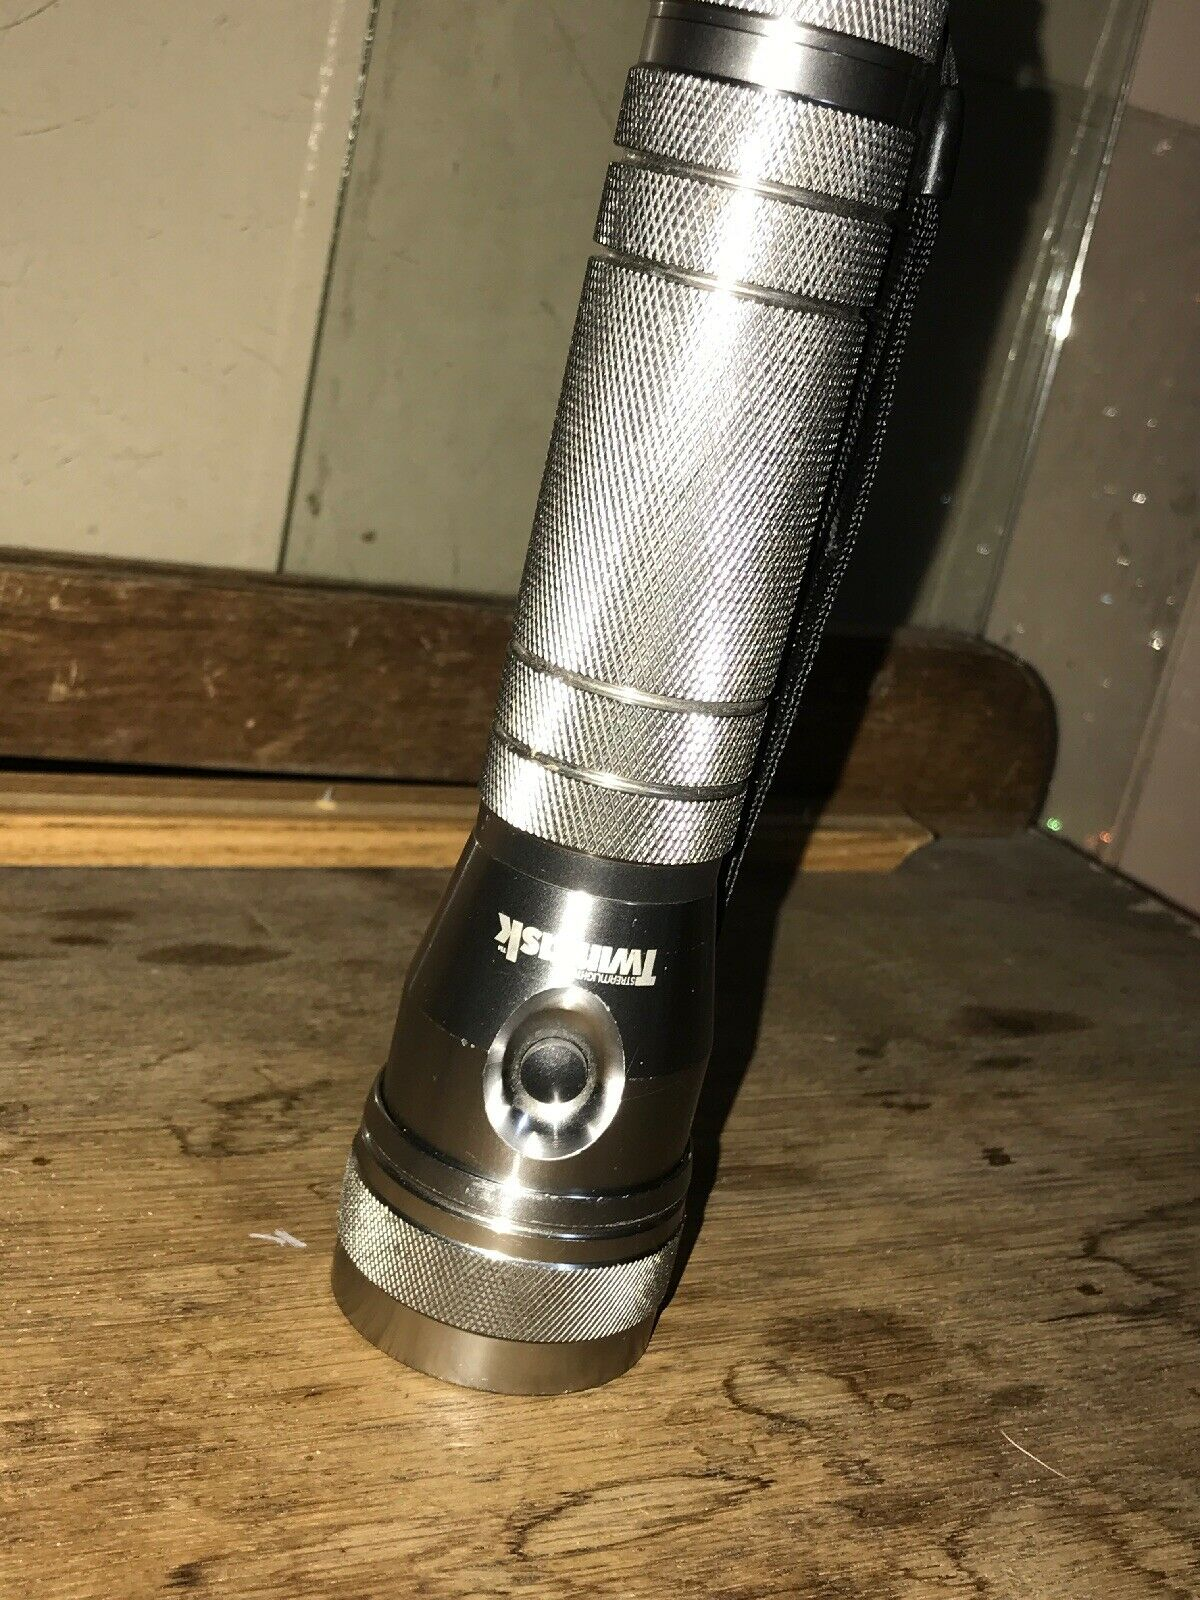 Twin Task Full Metal  Body Flashlight  come to choose your own sports style